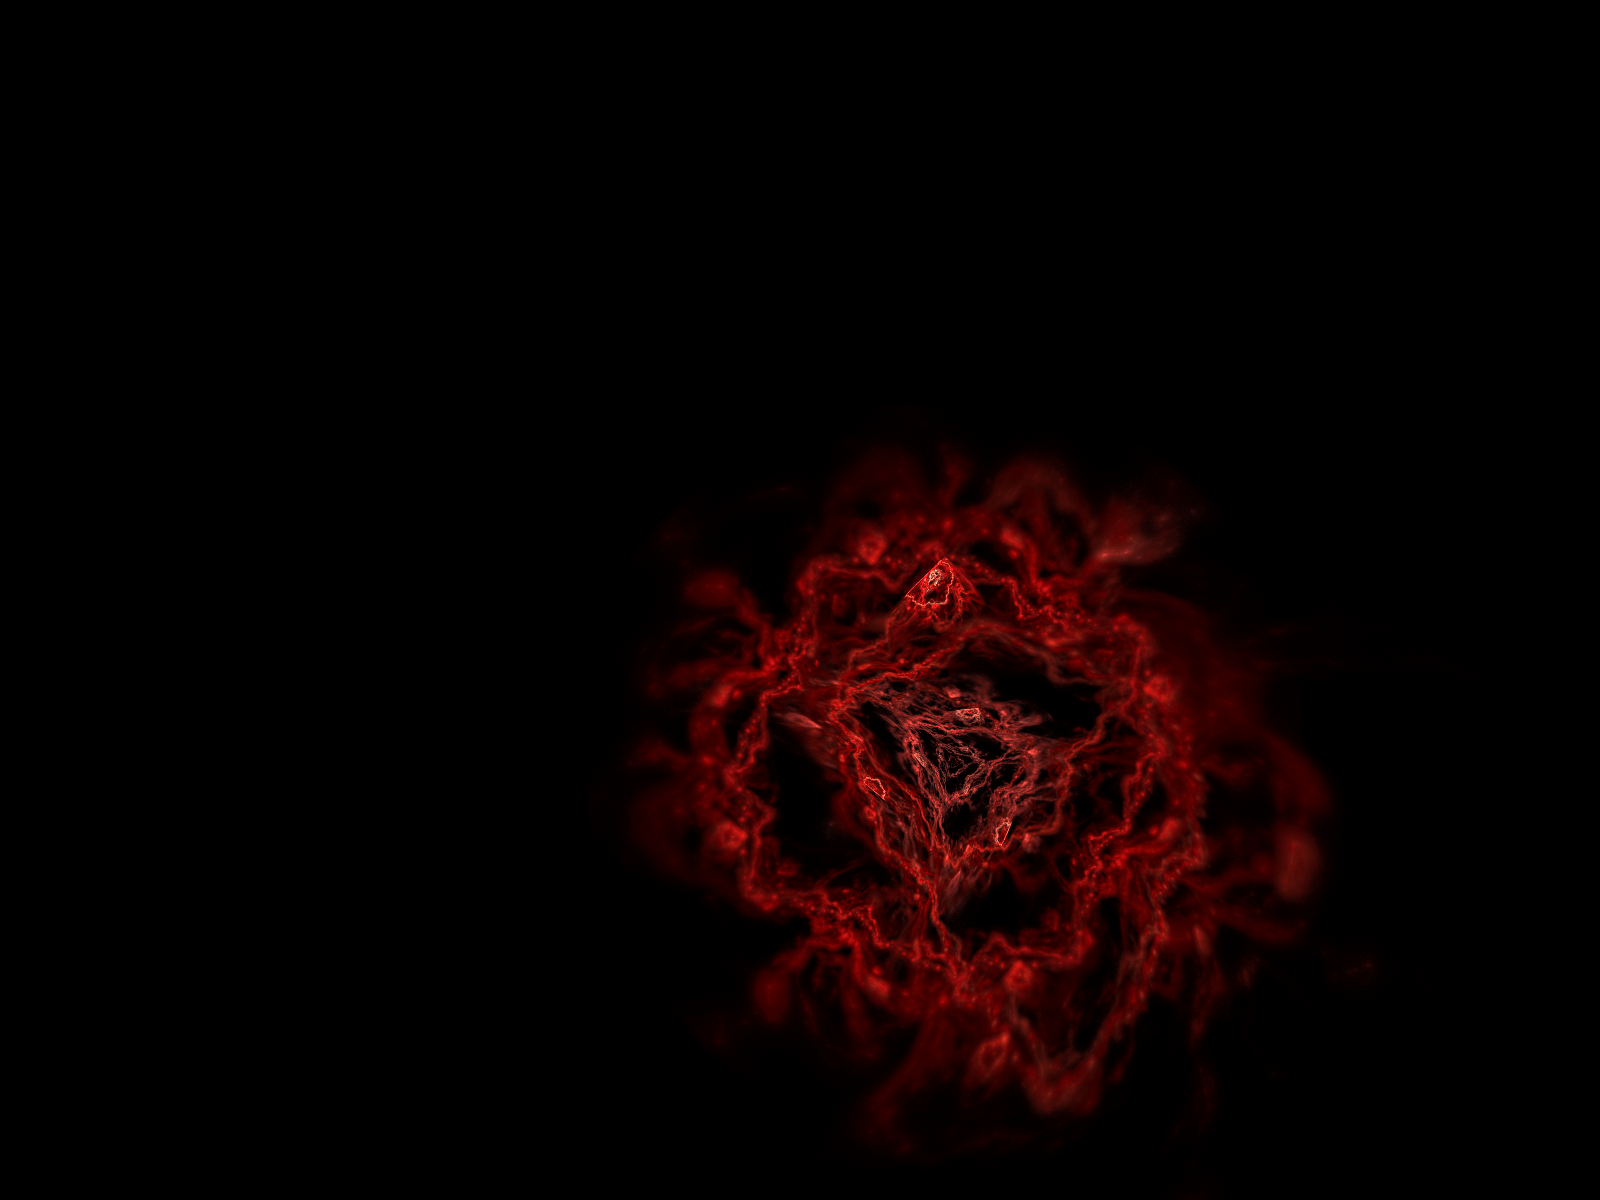 Red Rose With Black Backgrounds 1600x1200